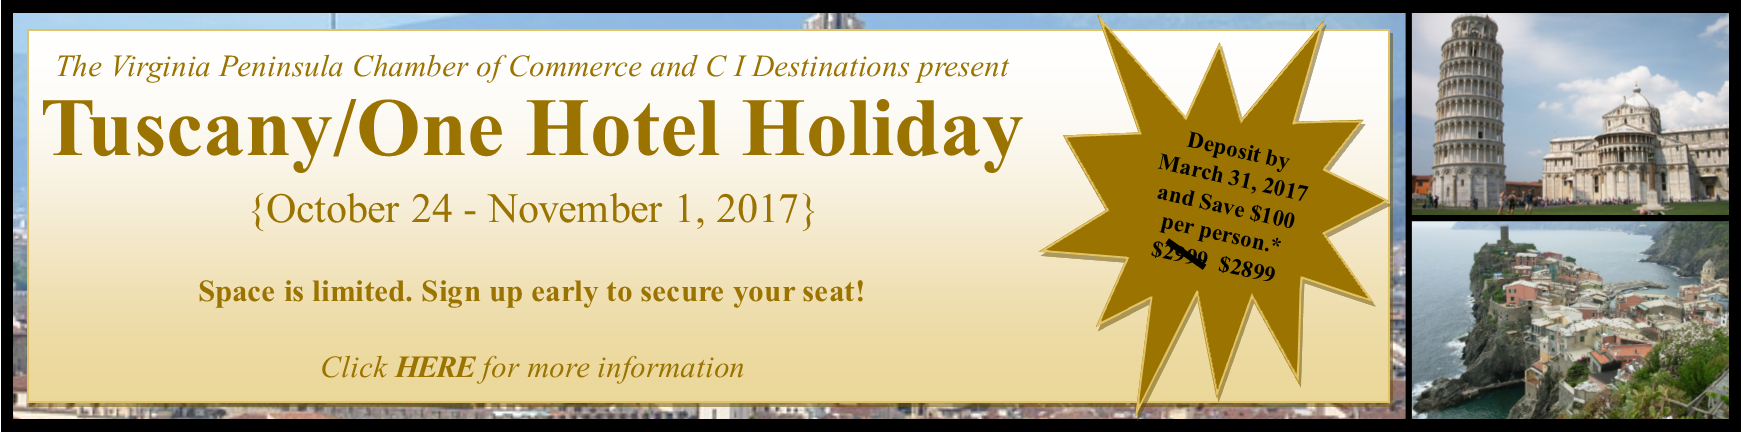 2017-Tuscany-One-Hotel-Holiday-WEBSITE-BANNER.png